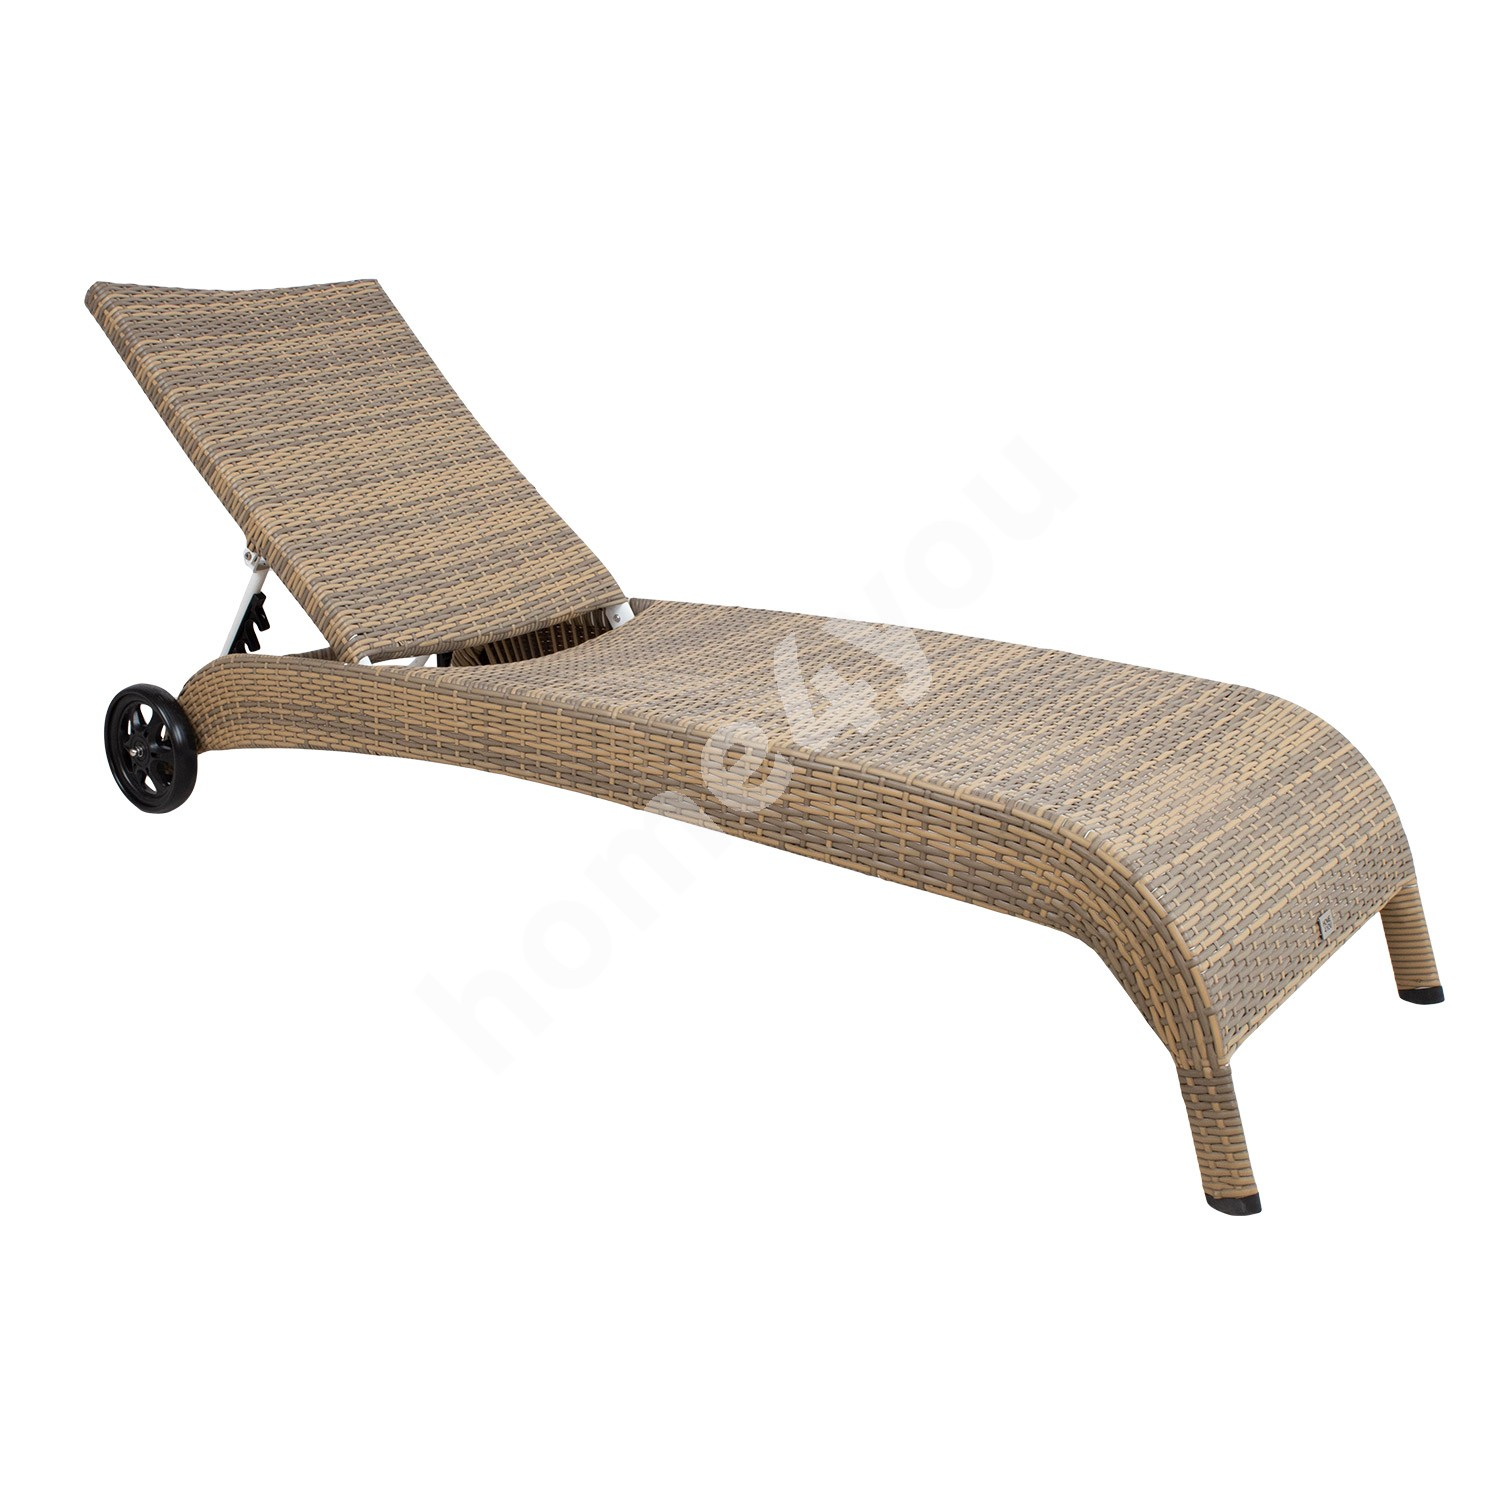 Deck chair WICKER, 73x196x99cm, aluminum frame with plastic wicker, color: cappuccino